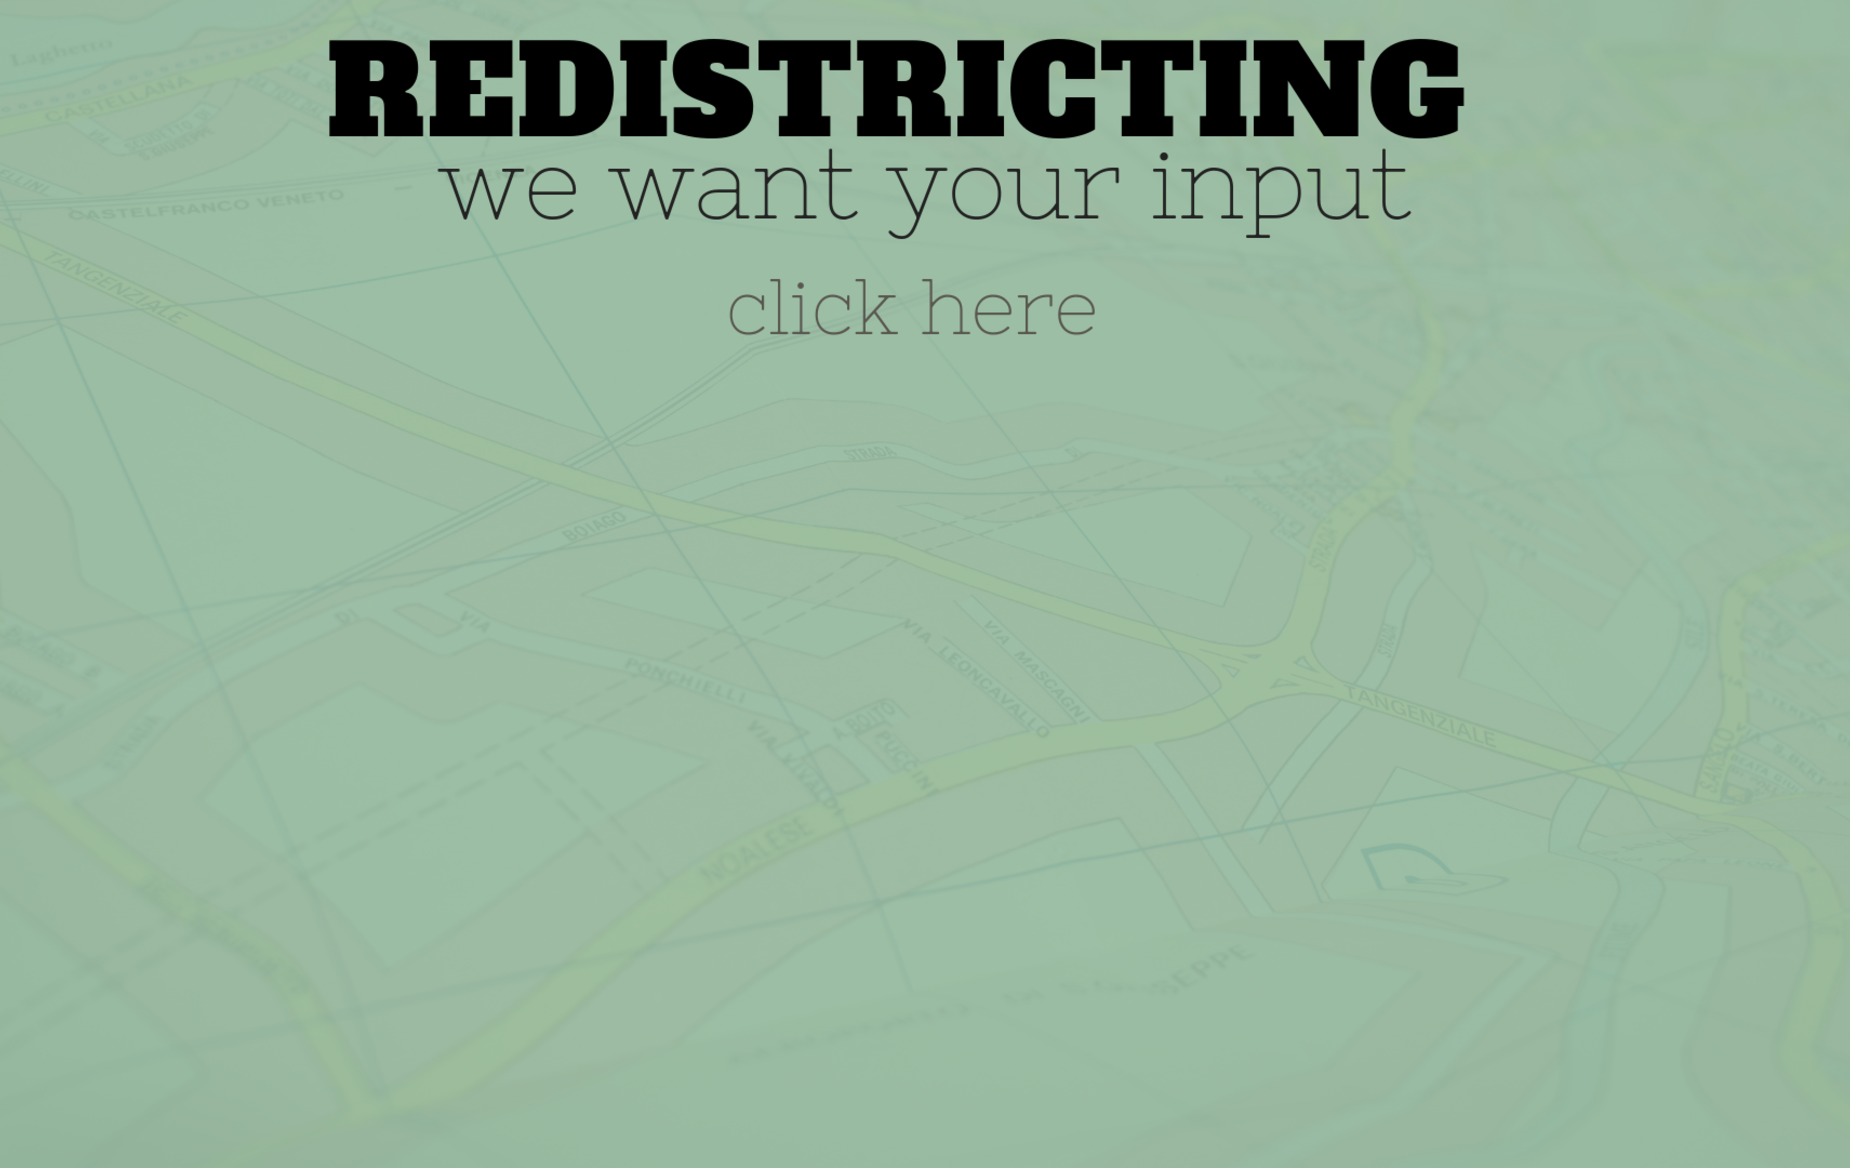 Redistricting - we want your input